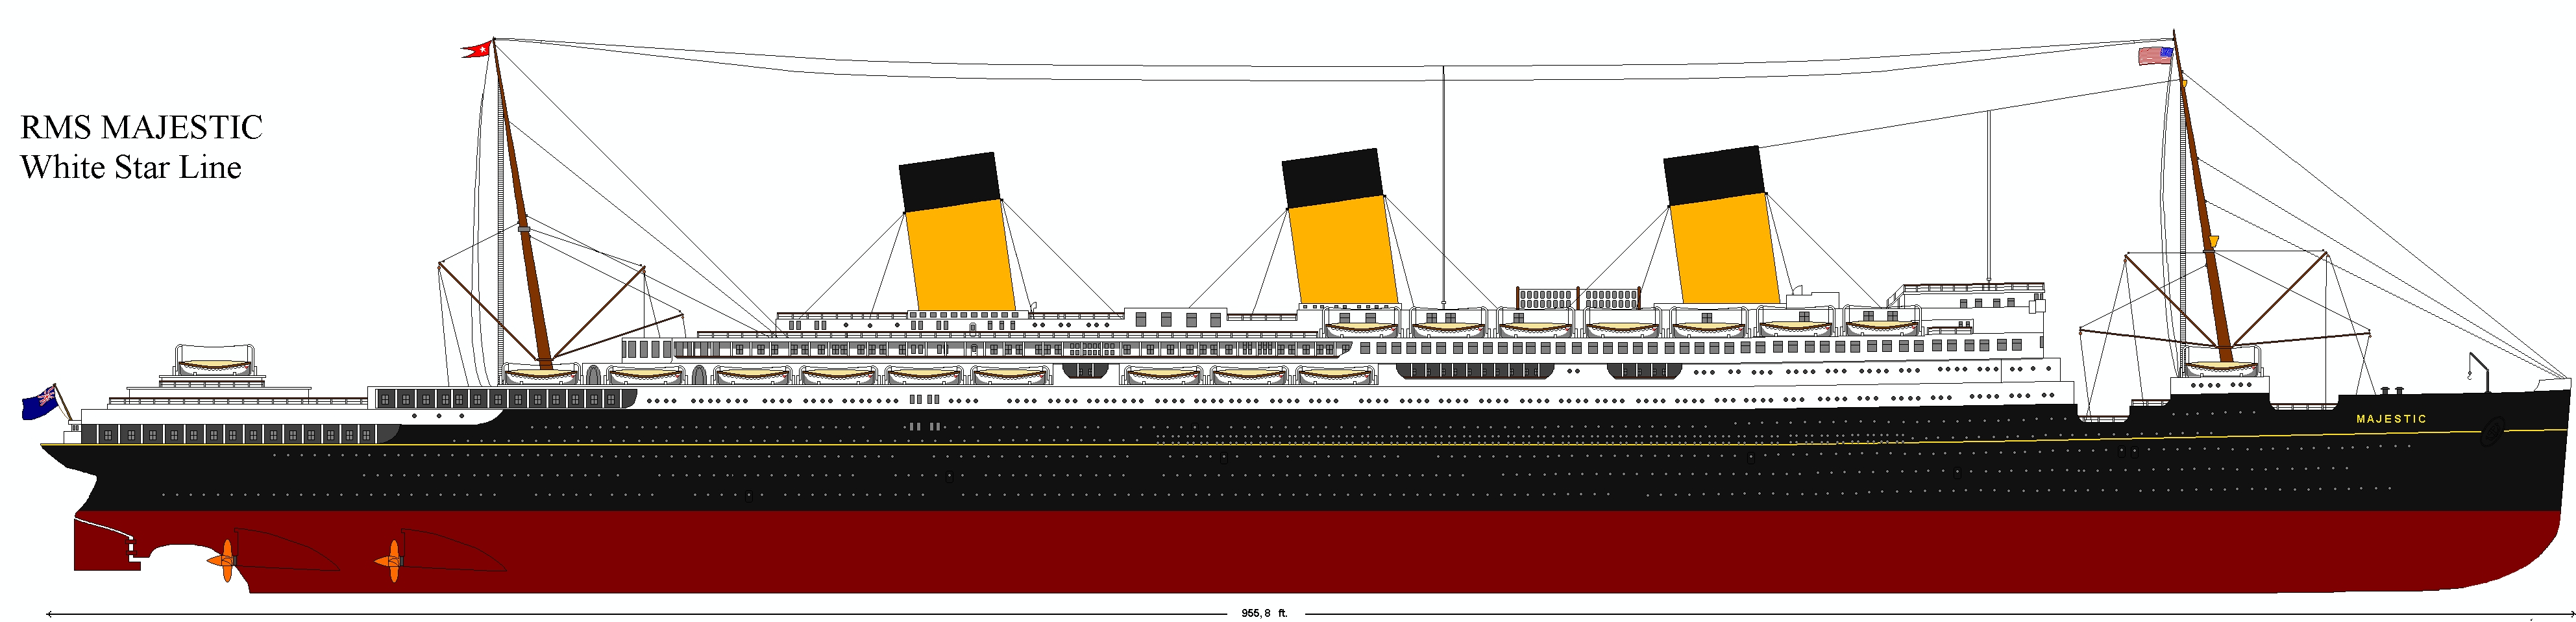 Rms Majestic Related K...